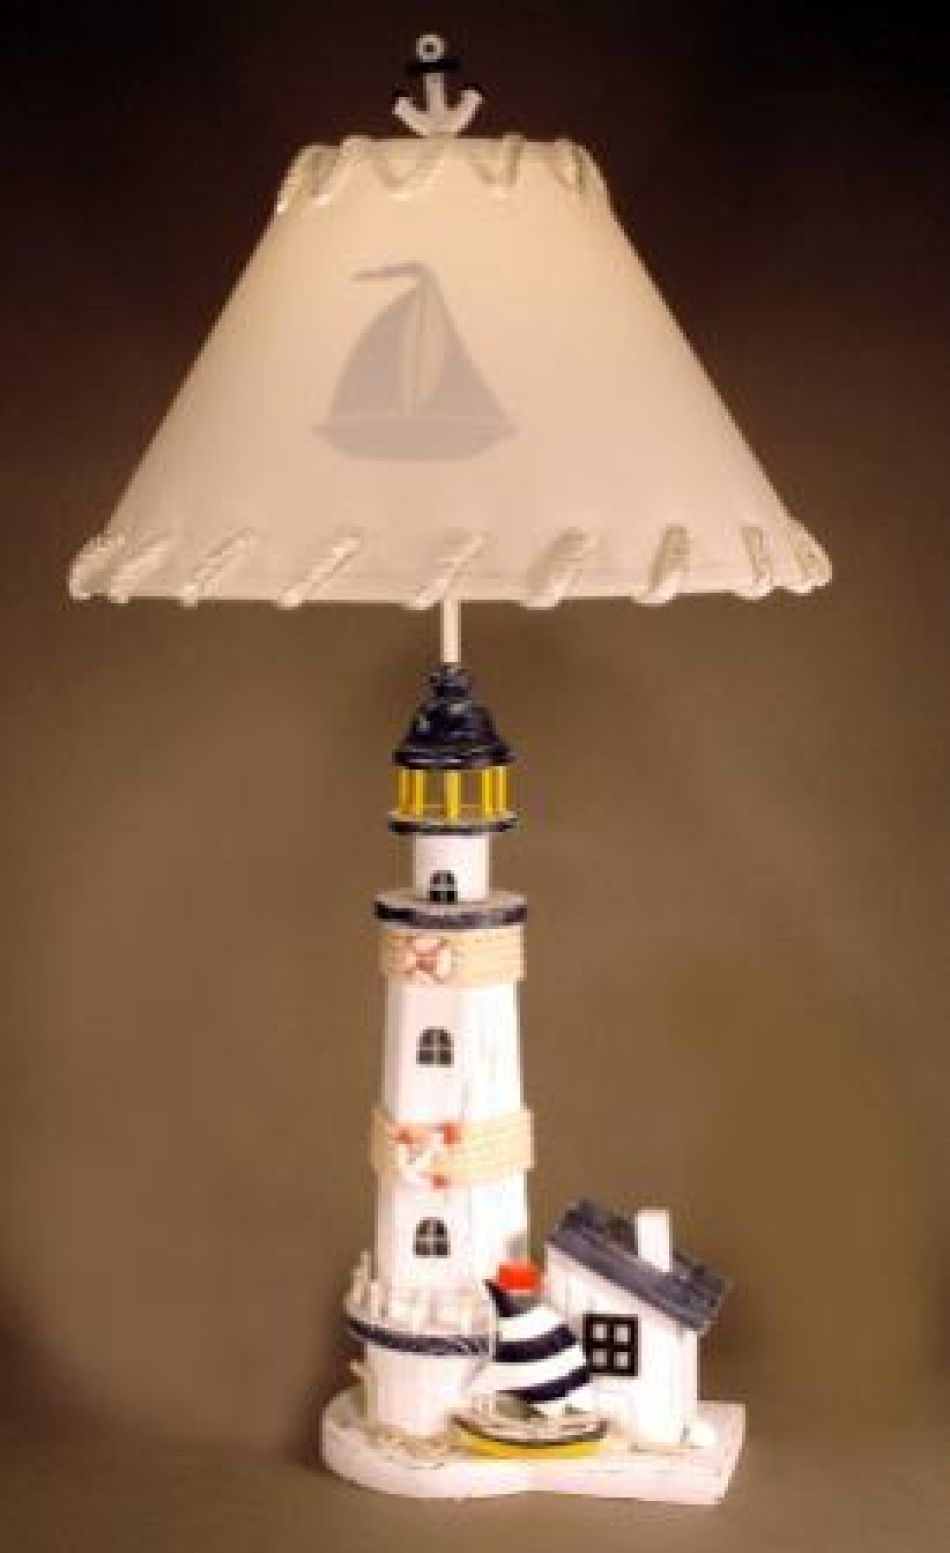 and of for a coastal get is features which lamp lamps white made coloring gold it perfect red this pin glass lighthouse nautical iron